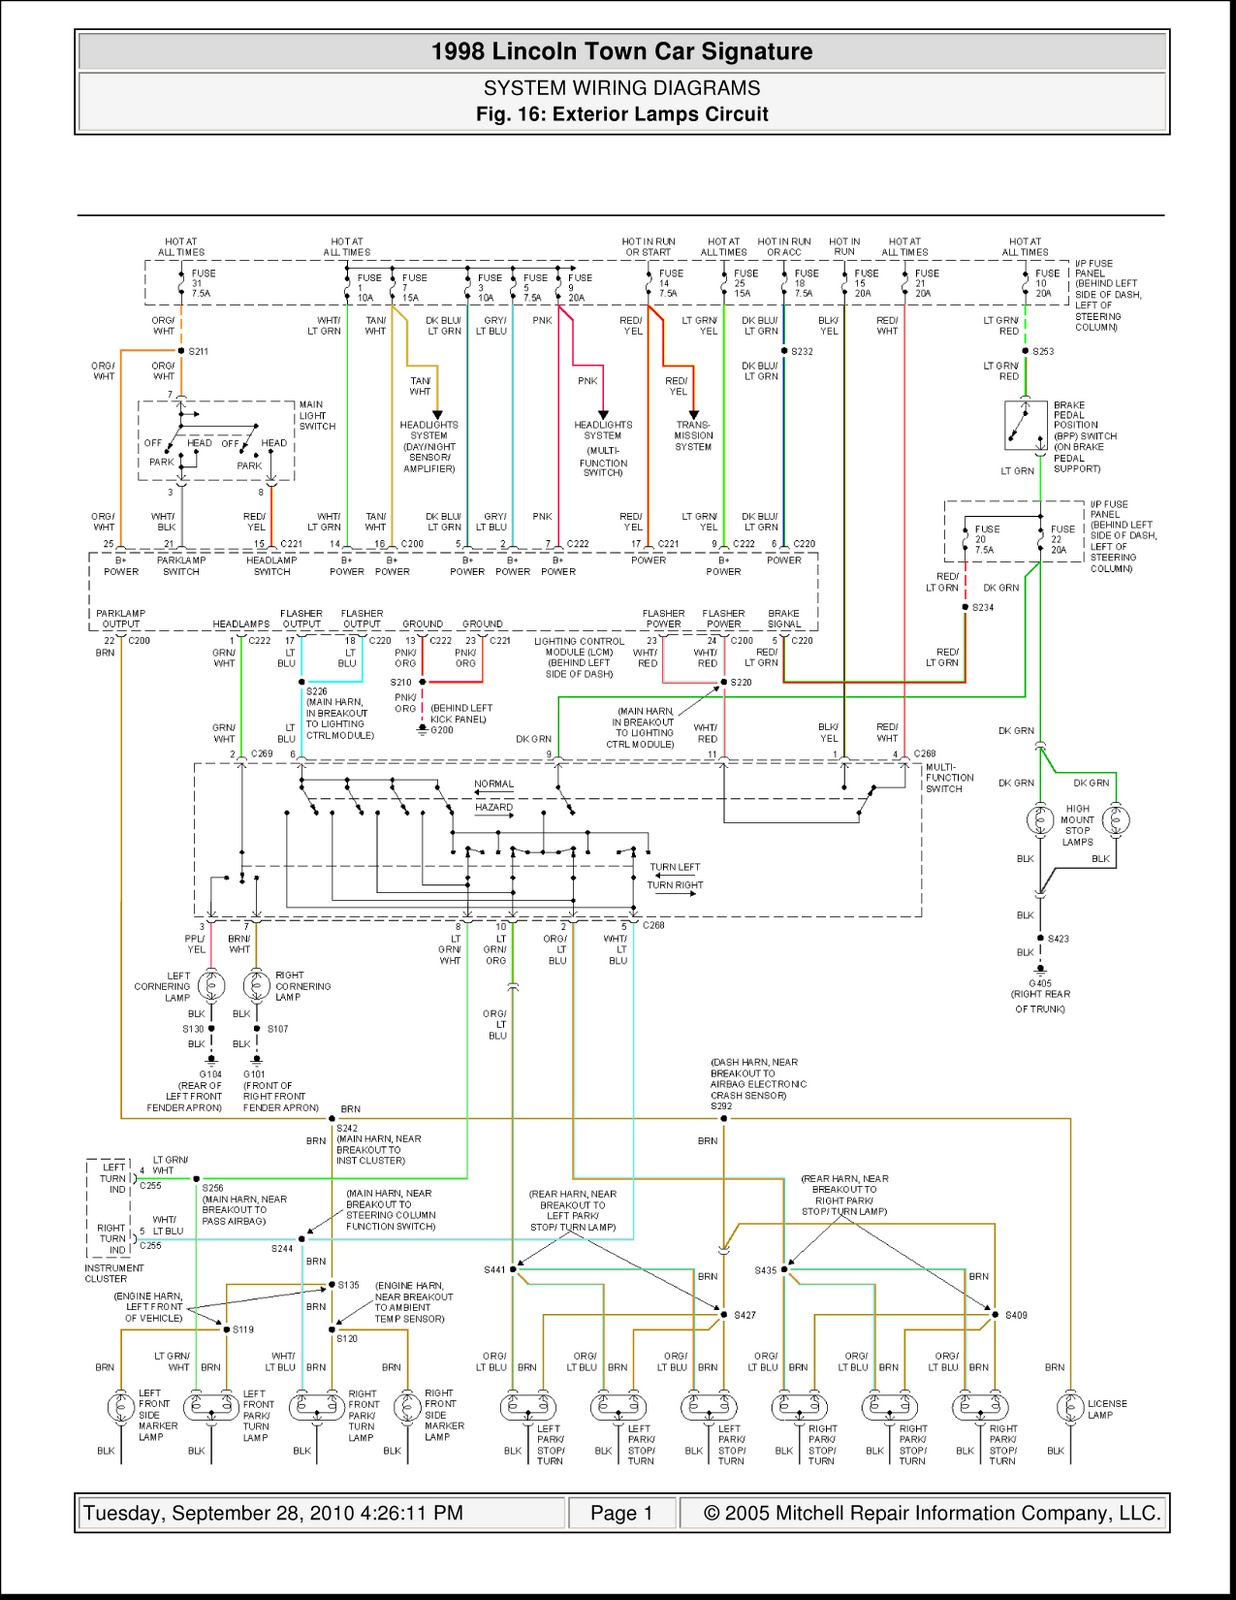 1998 Lincoln Town Car Signature System Wiring Diagrams ...